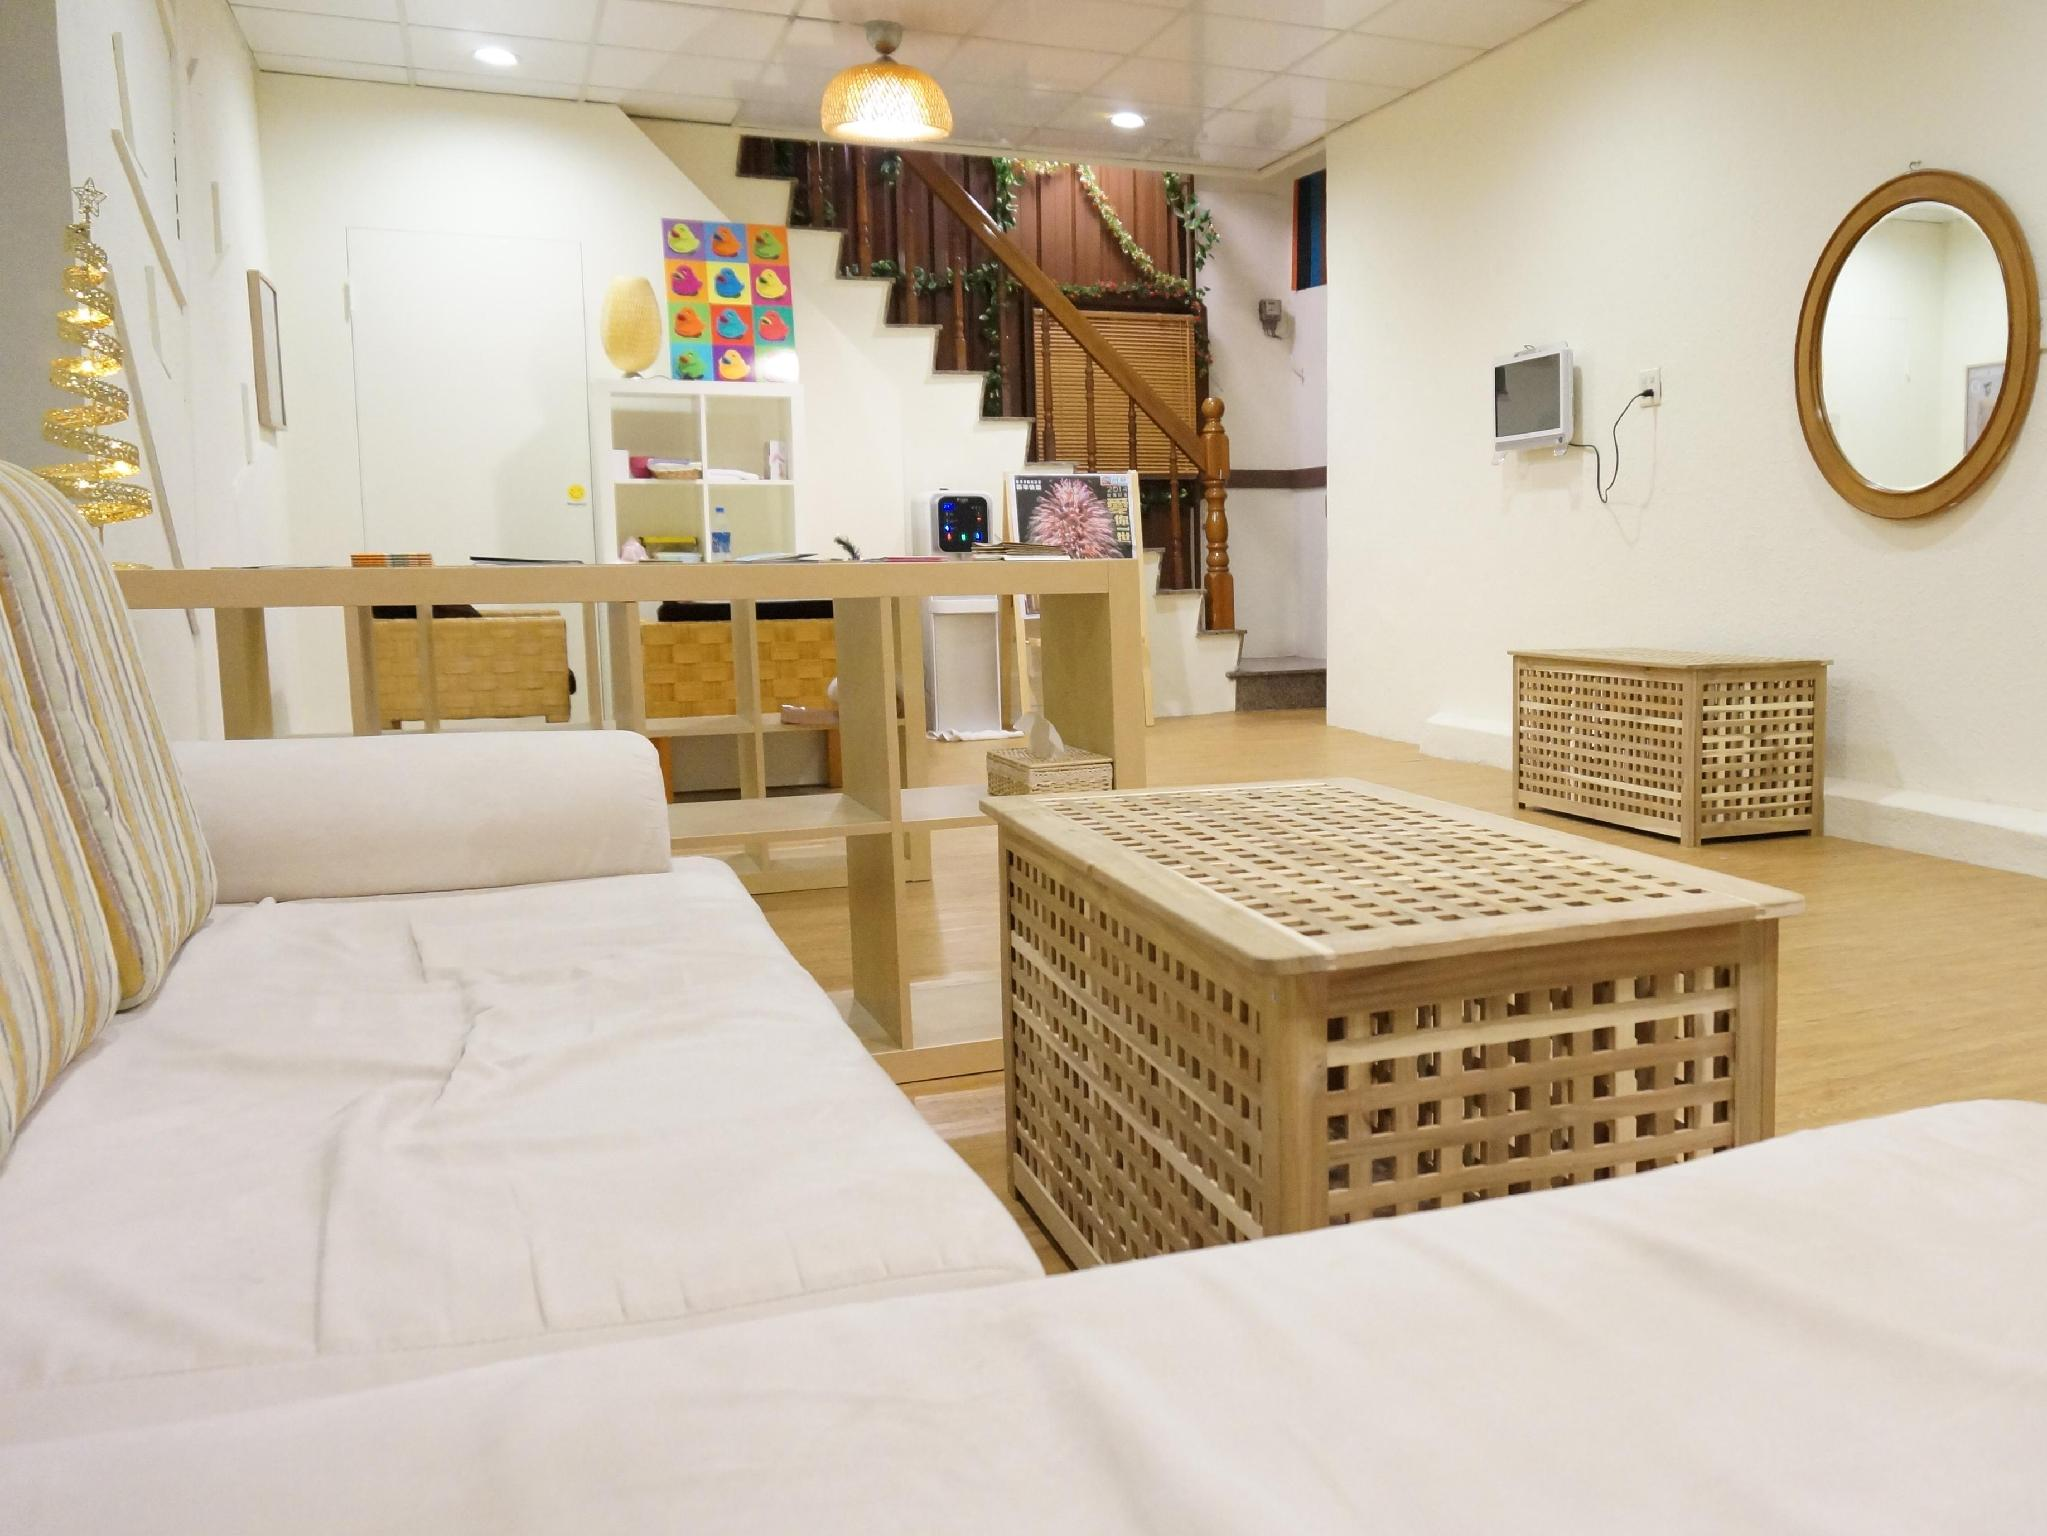 Anping Joy House Hotels In Tainan Taiwan Book Hotels And Cheap Accommodation